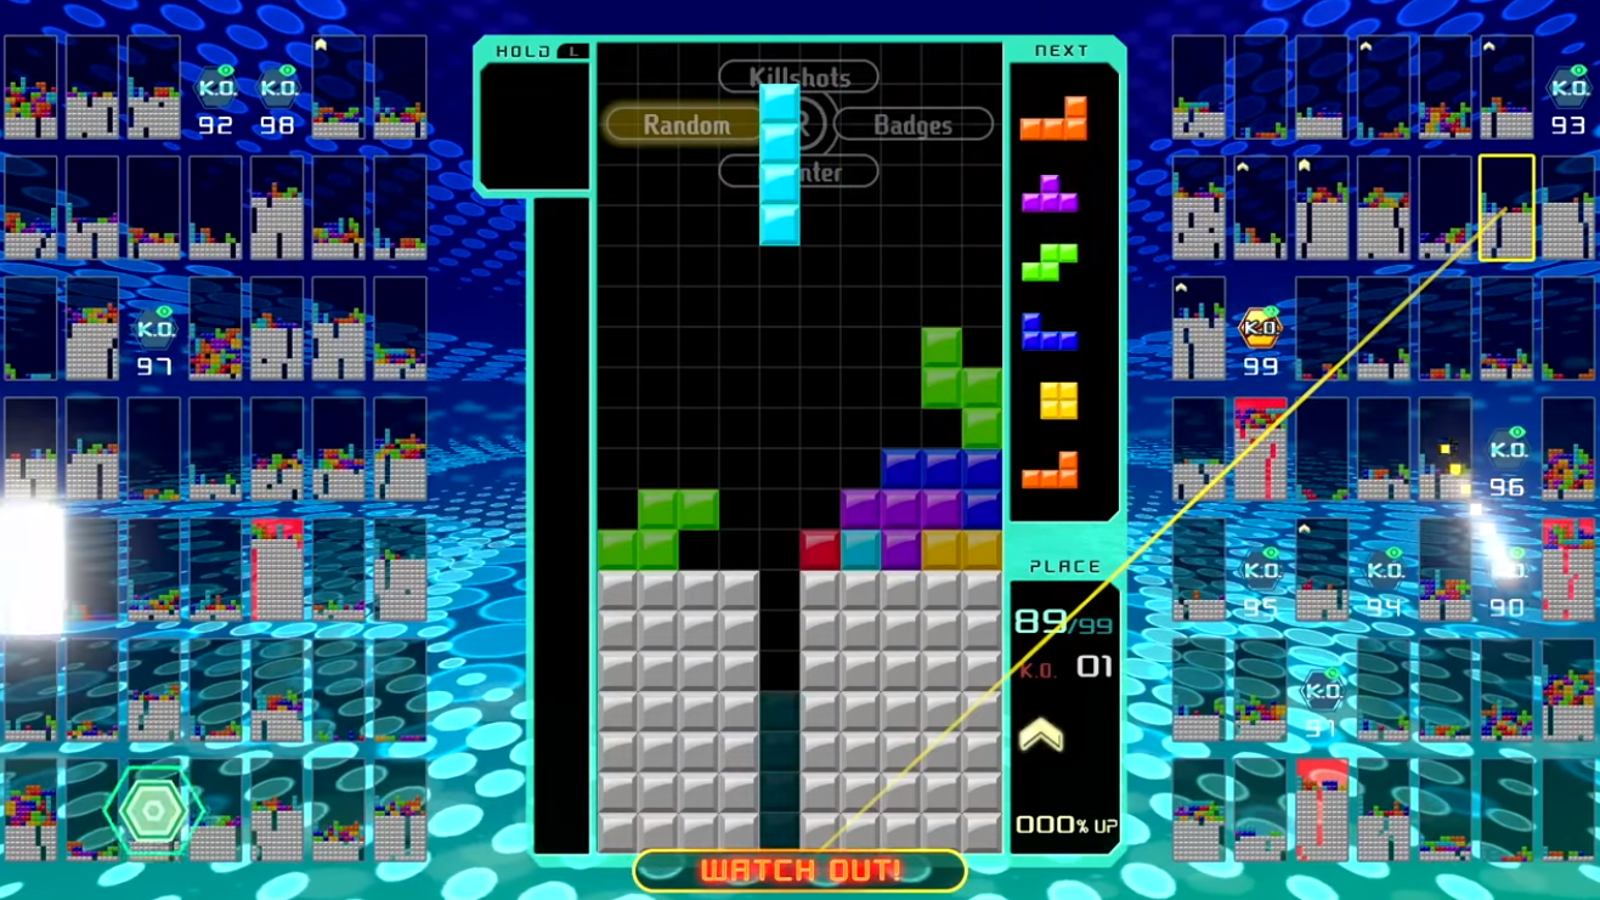 Tetris 99 Has No Tutorial, So Here's What You Need To Know